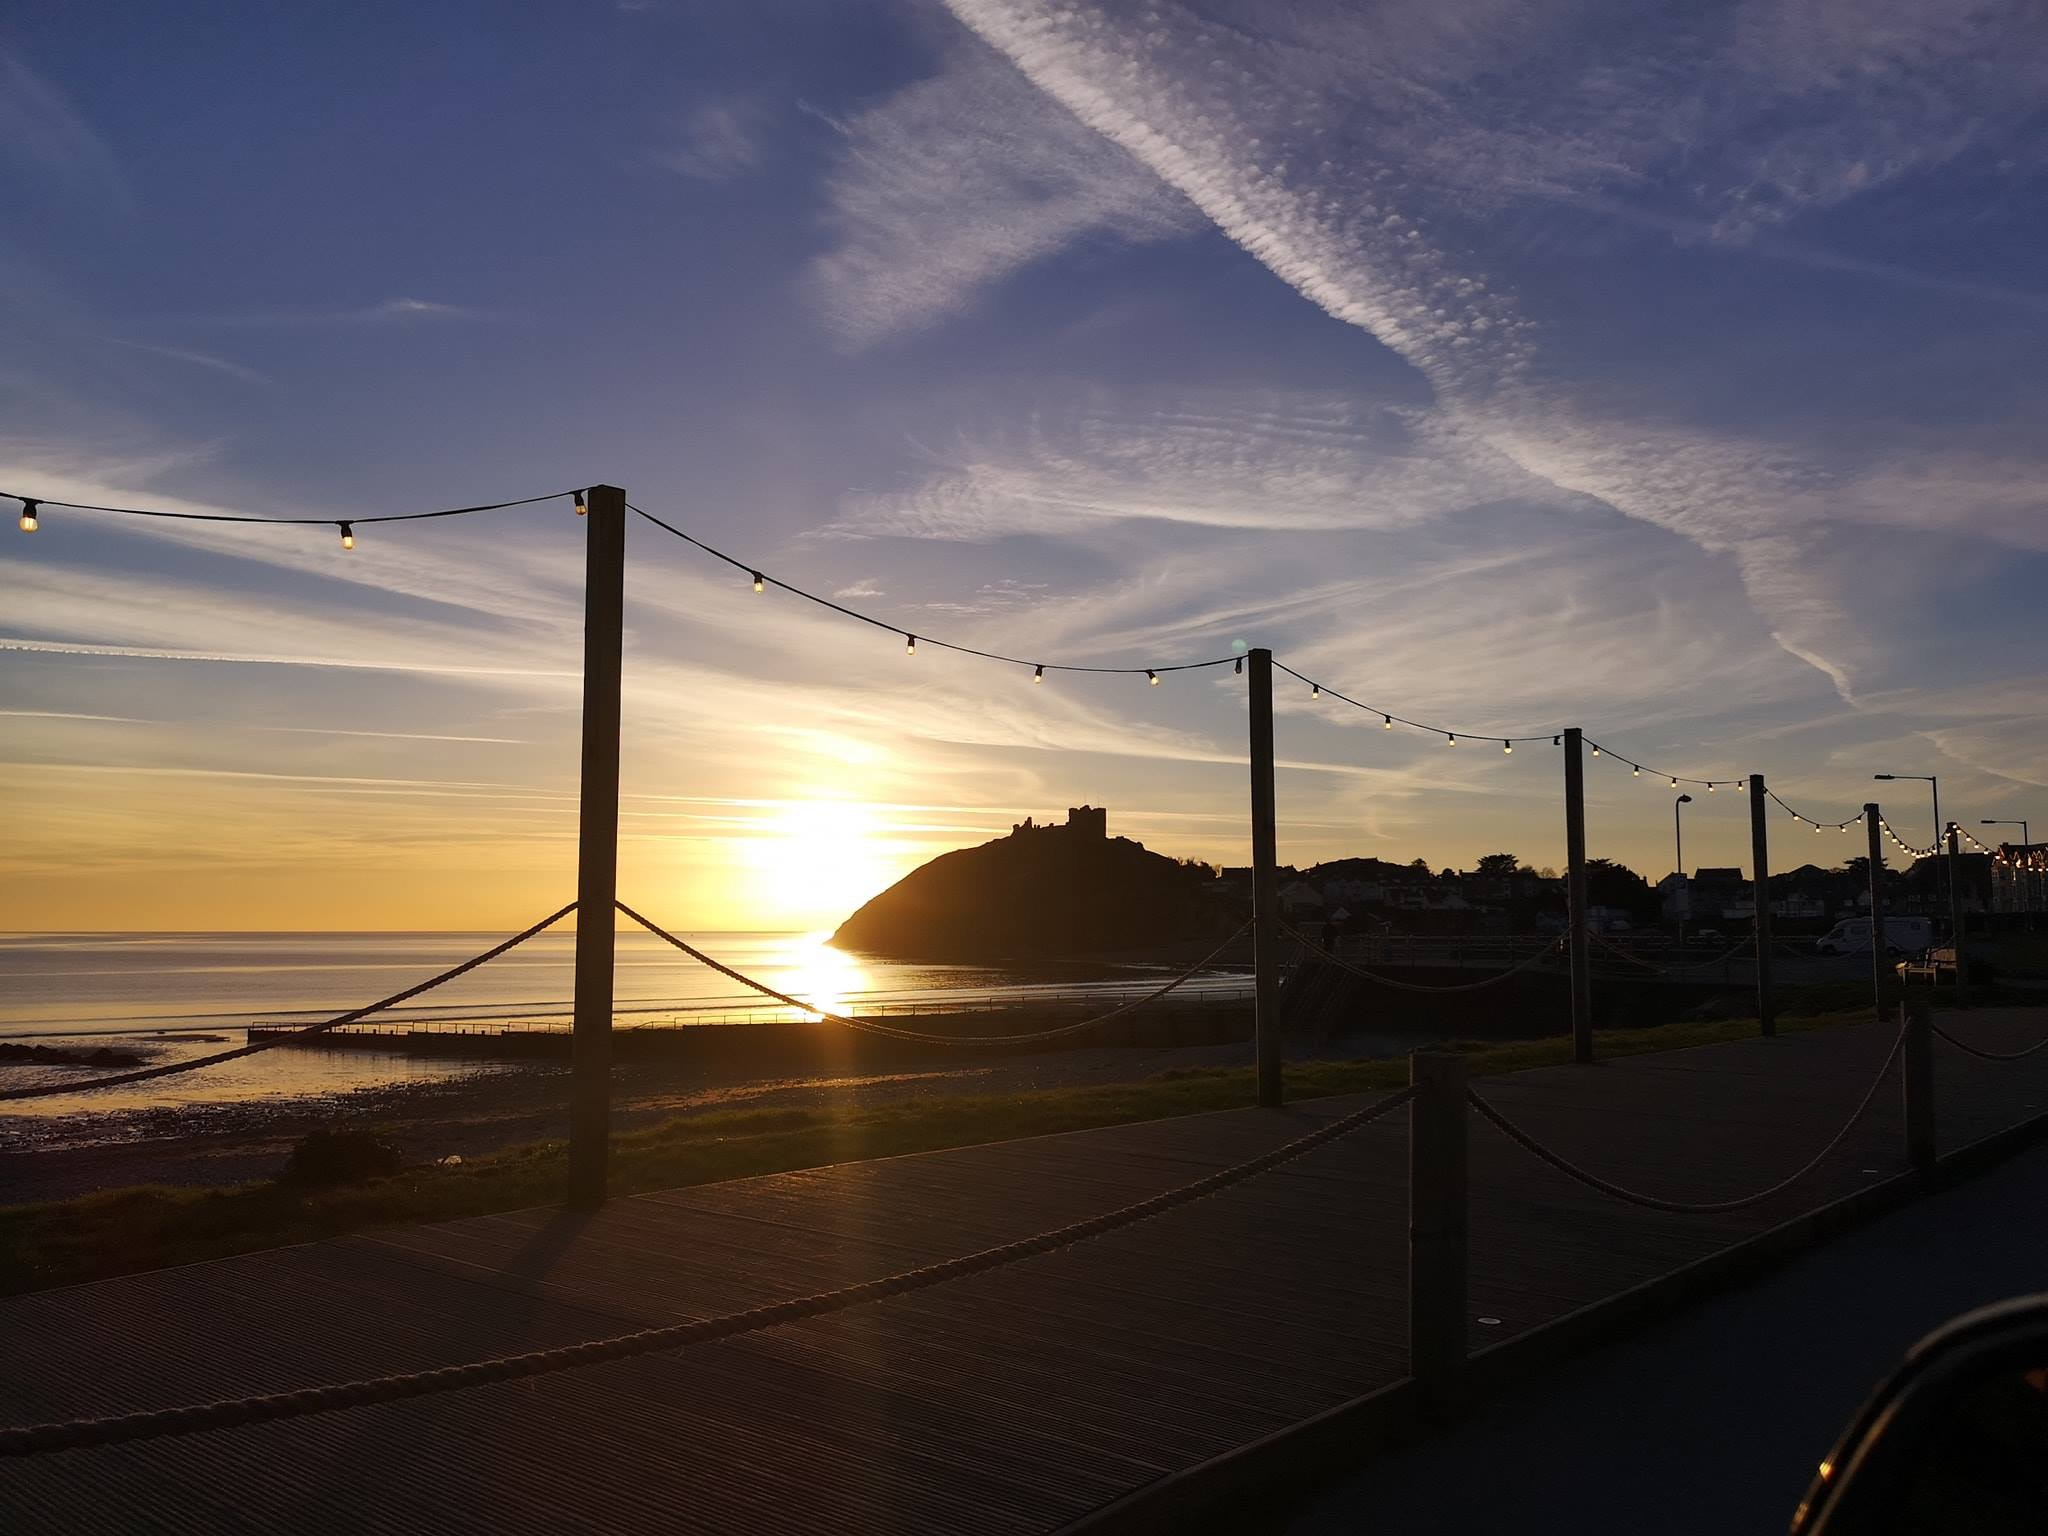 View of Criccieth Beach at Sunset, The Caerwylan, Criccieth, North Wales